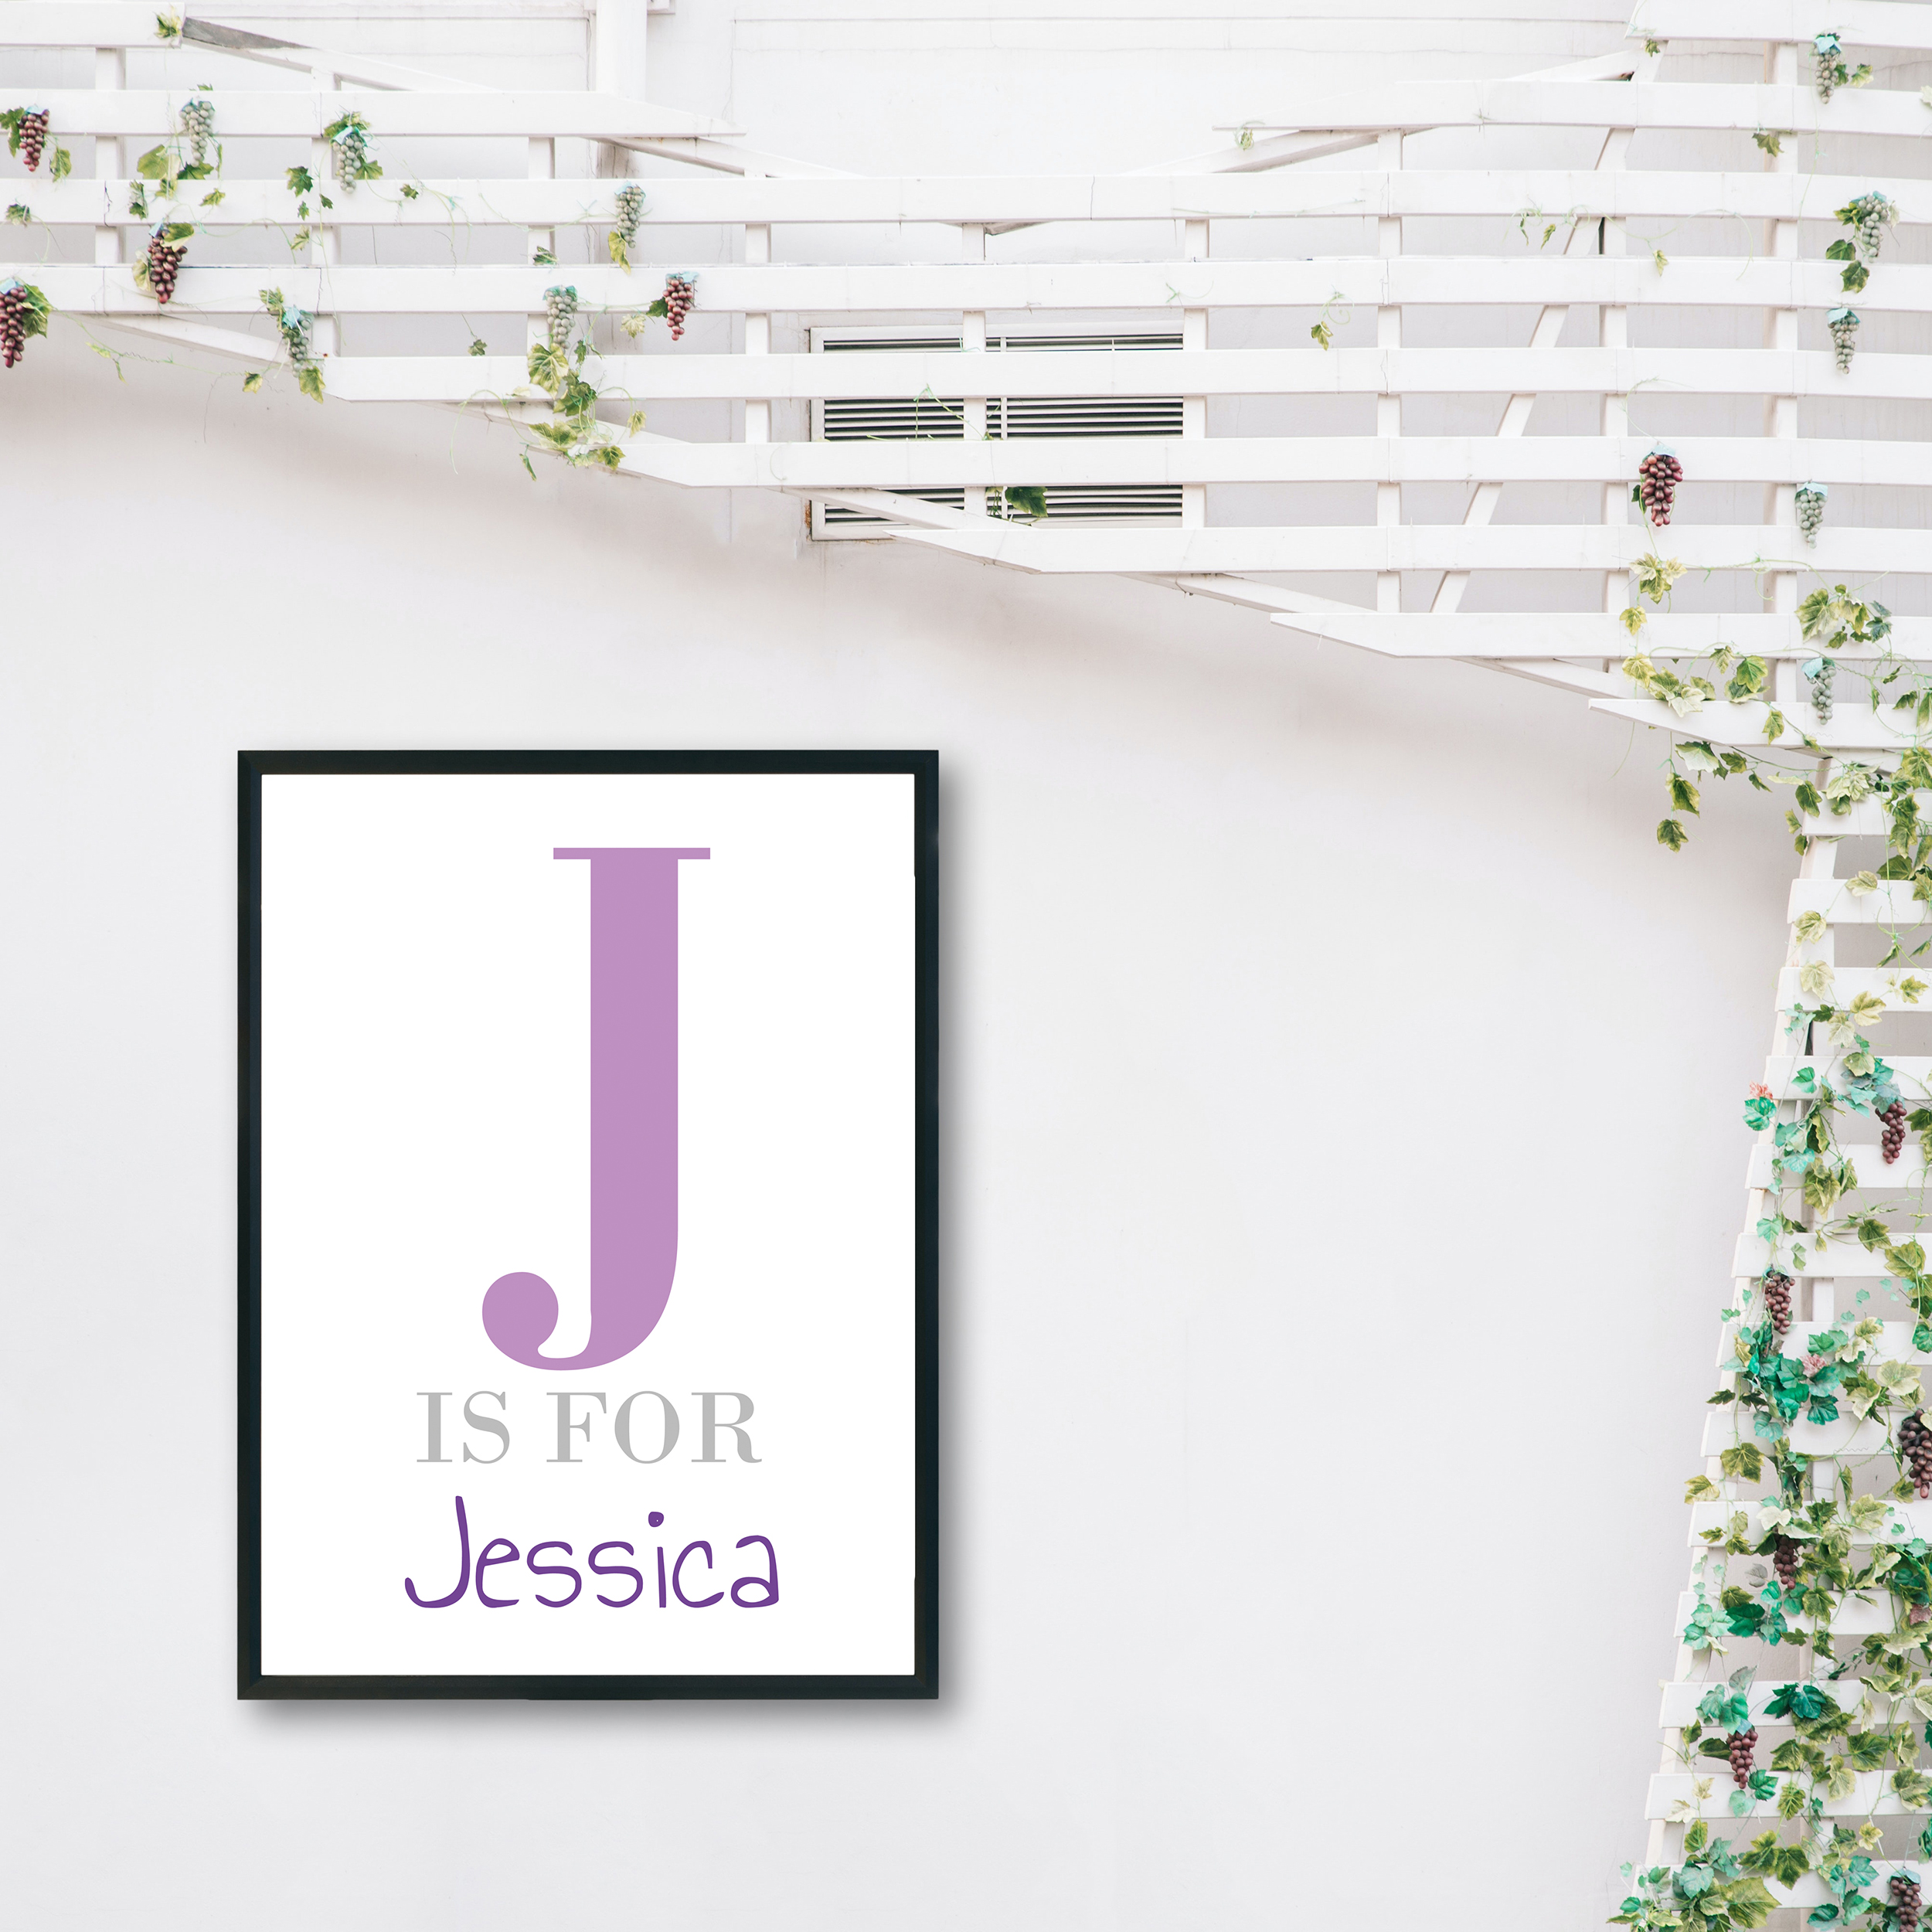 Initial & Name Kids Bedroom Recycled Wall Print